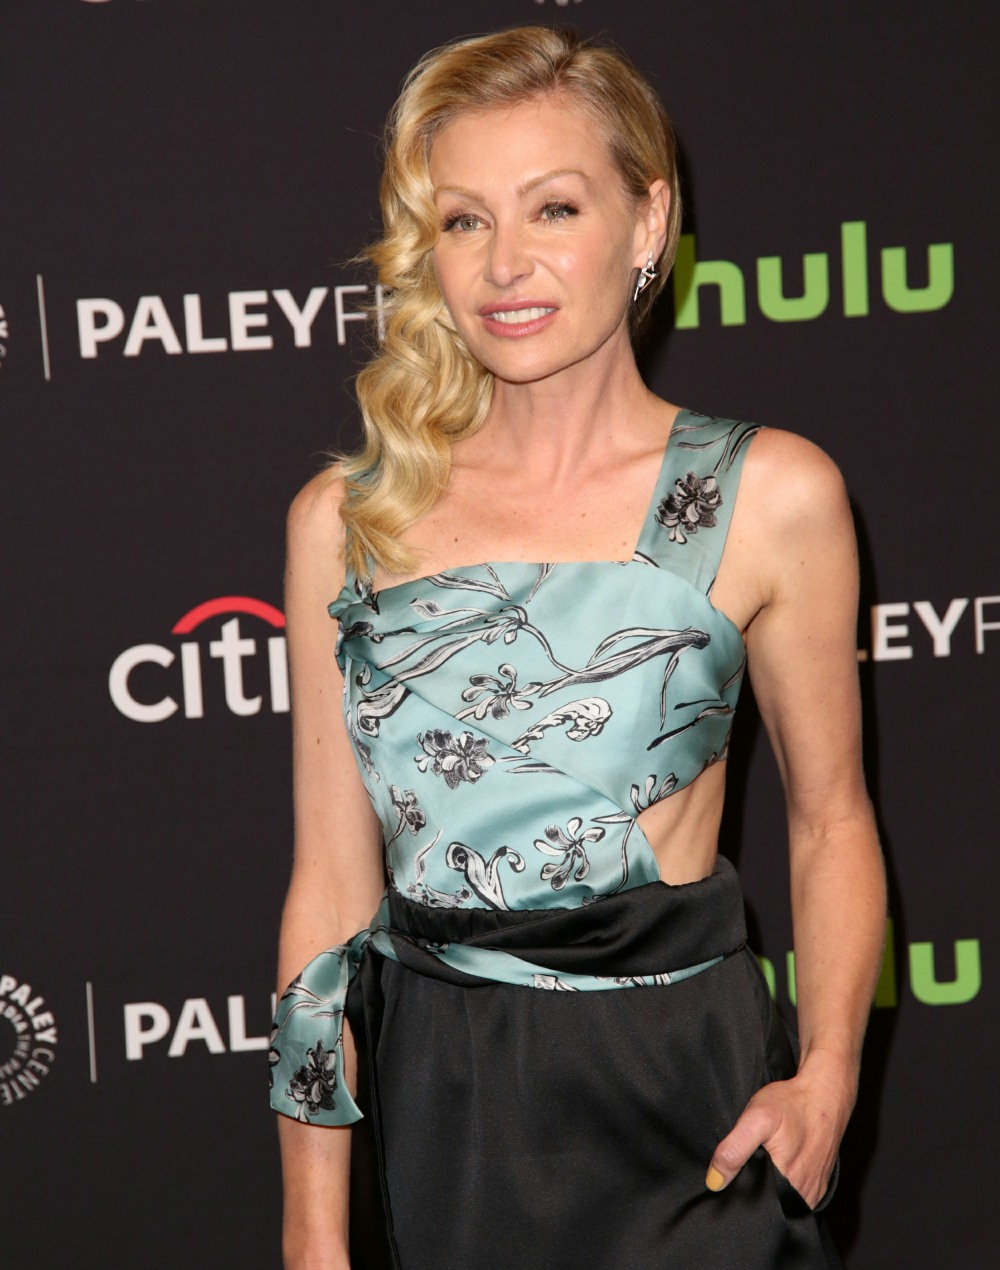 Portia de Rossi: Steven Seagal harassed me & my agent did nothing